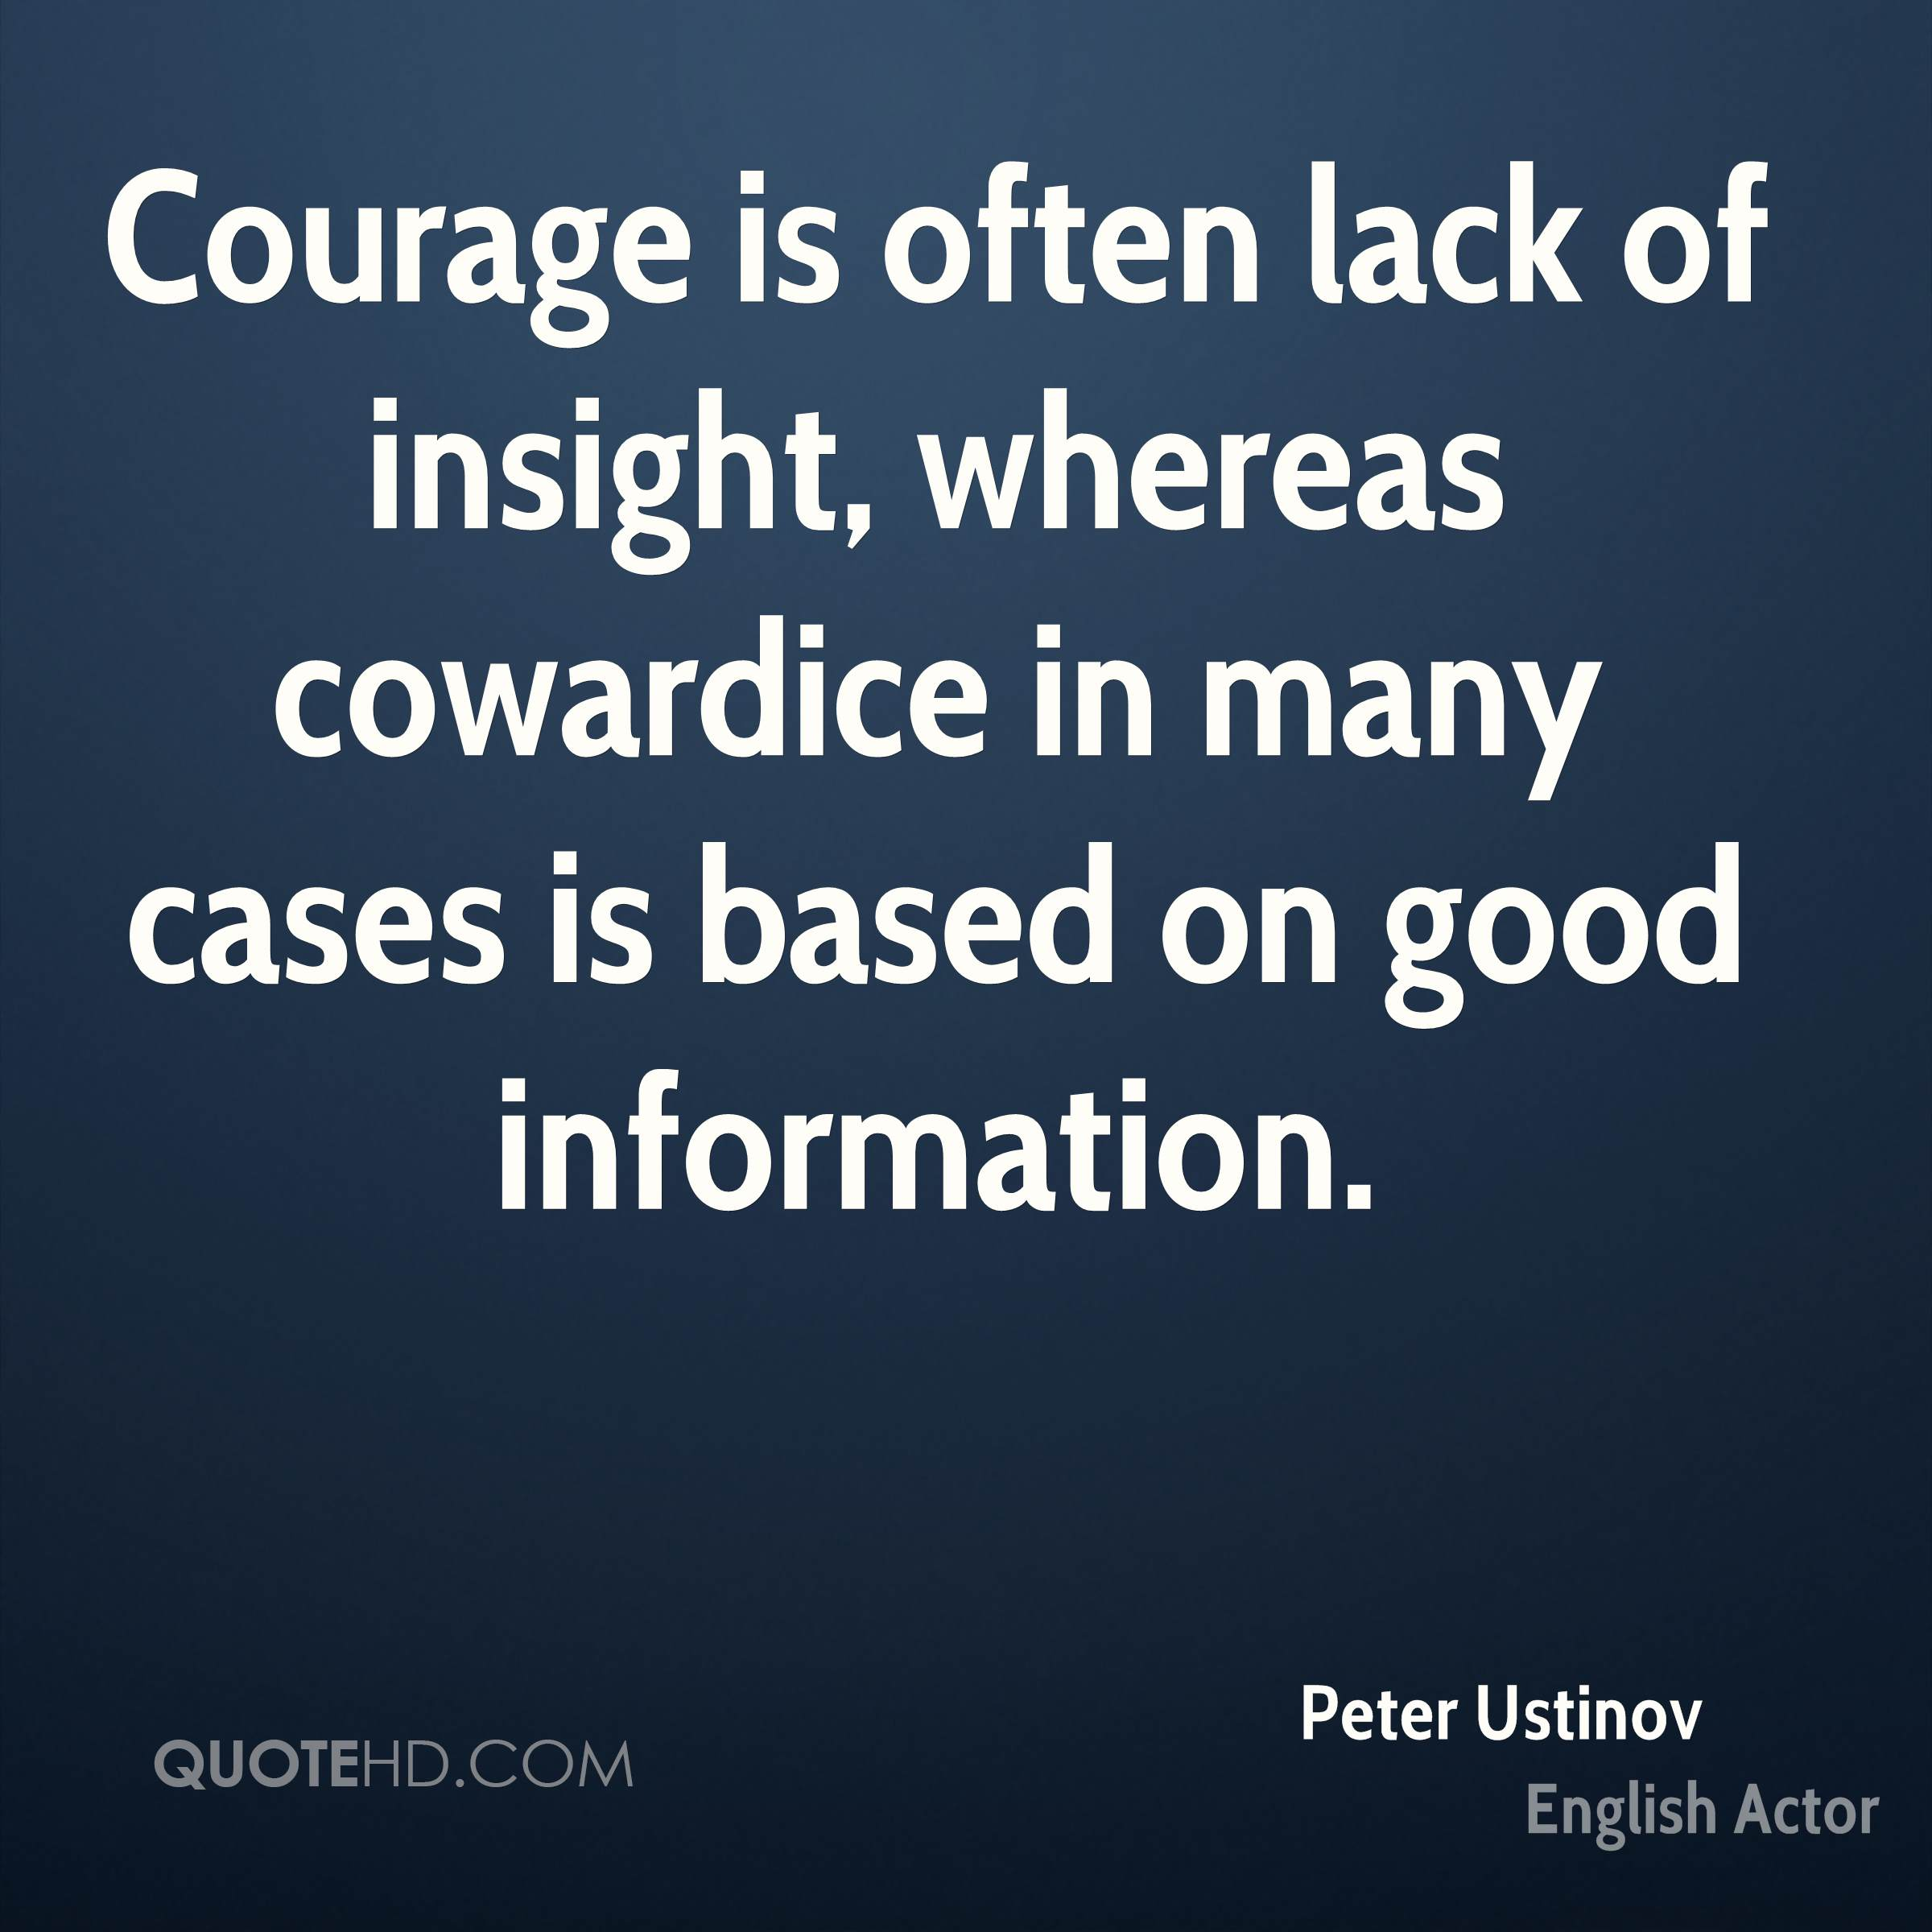 Courage is often lack of insight, whereas cowardice in many cases is based on good information.